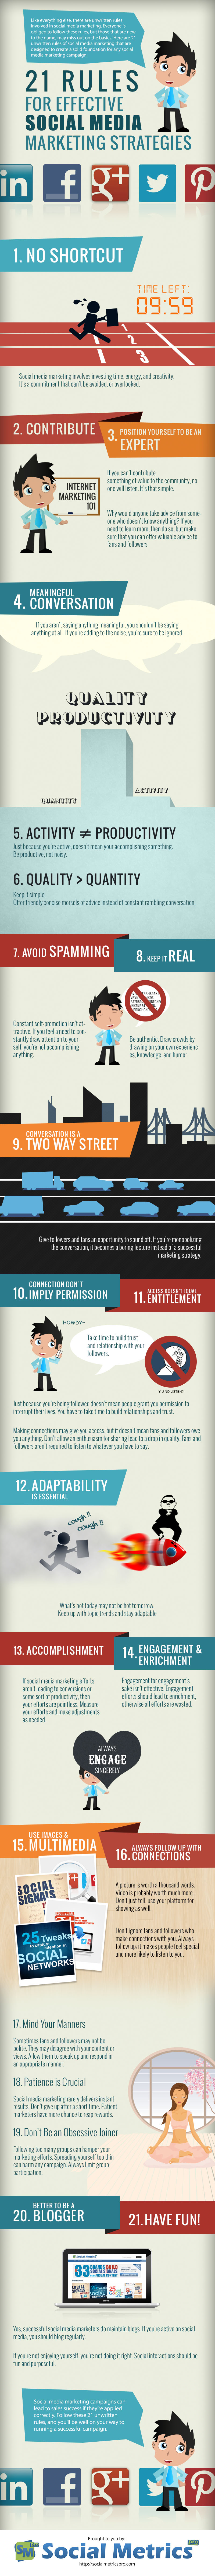 21 Great Rules for Effective Social Media Marketing Strategies for 2014 (SMM)